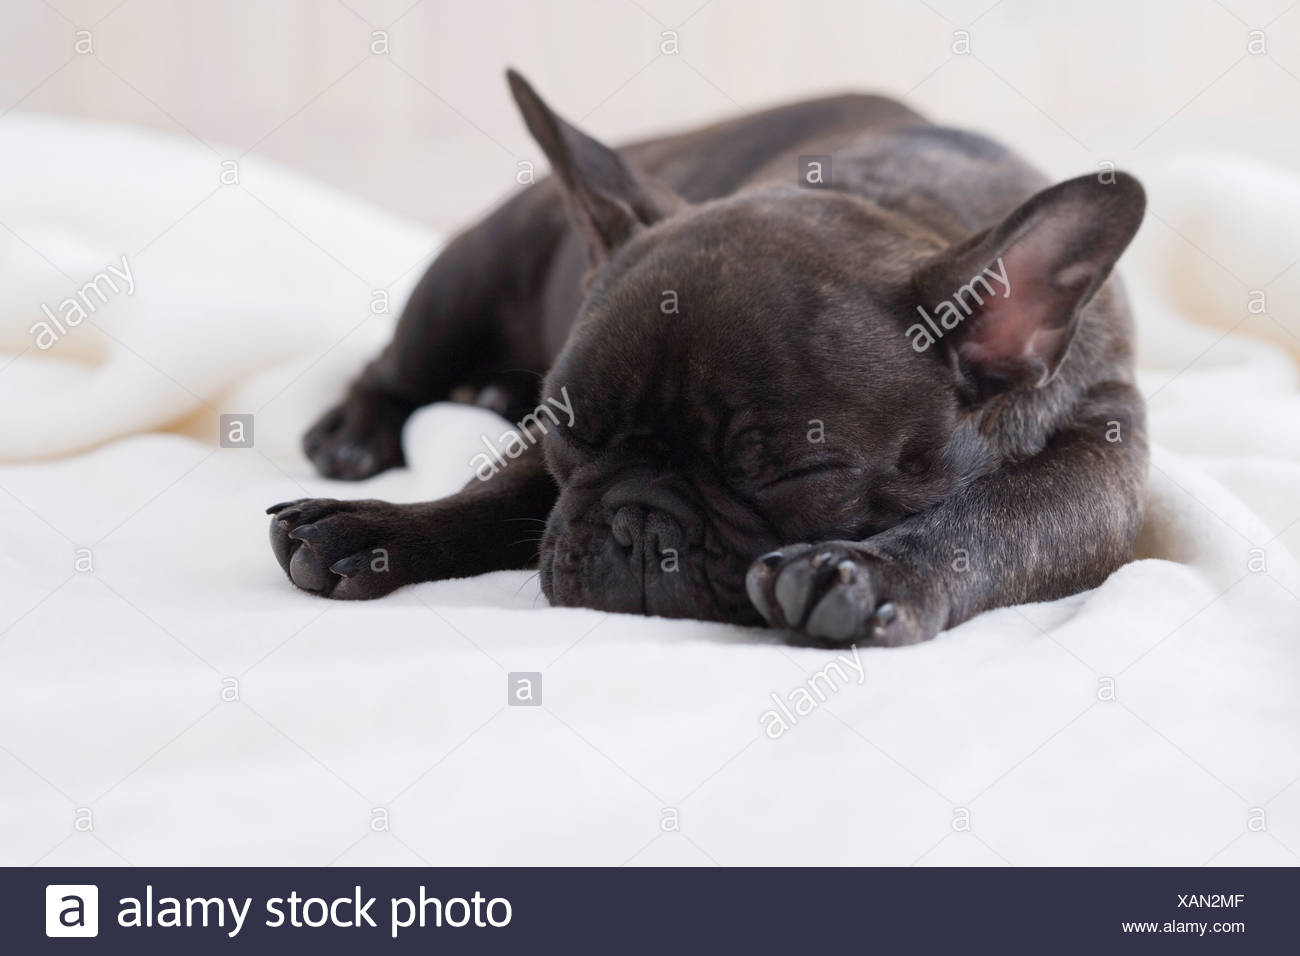 French bulldog sleeping on a blanket - Stock Image